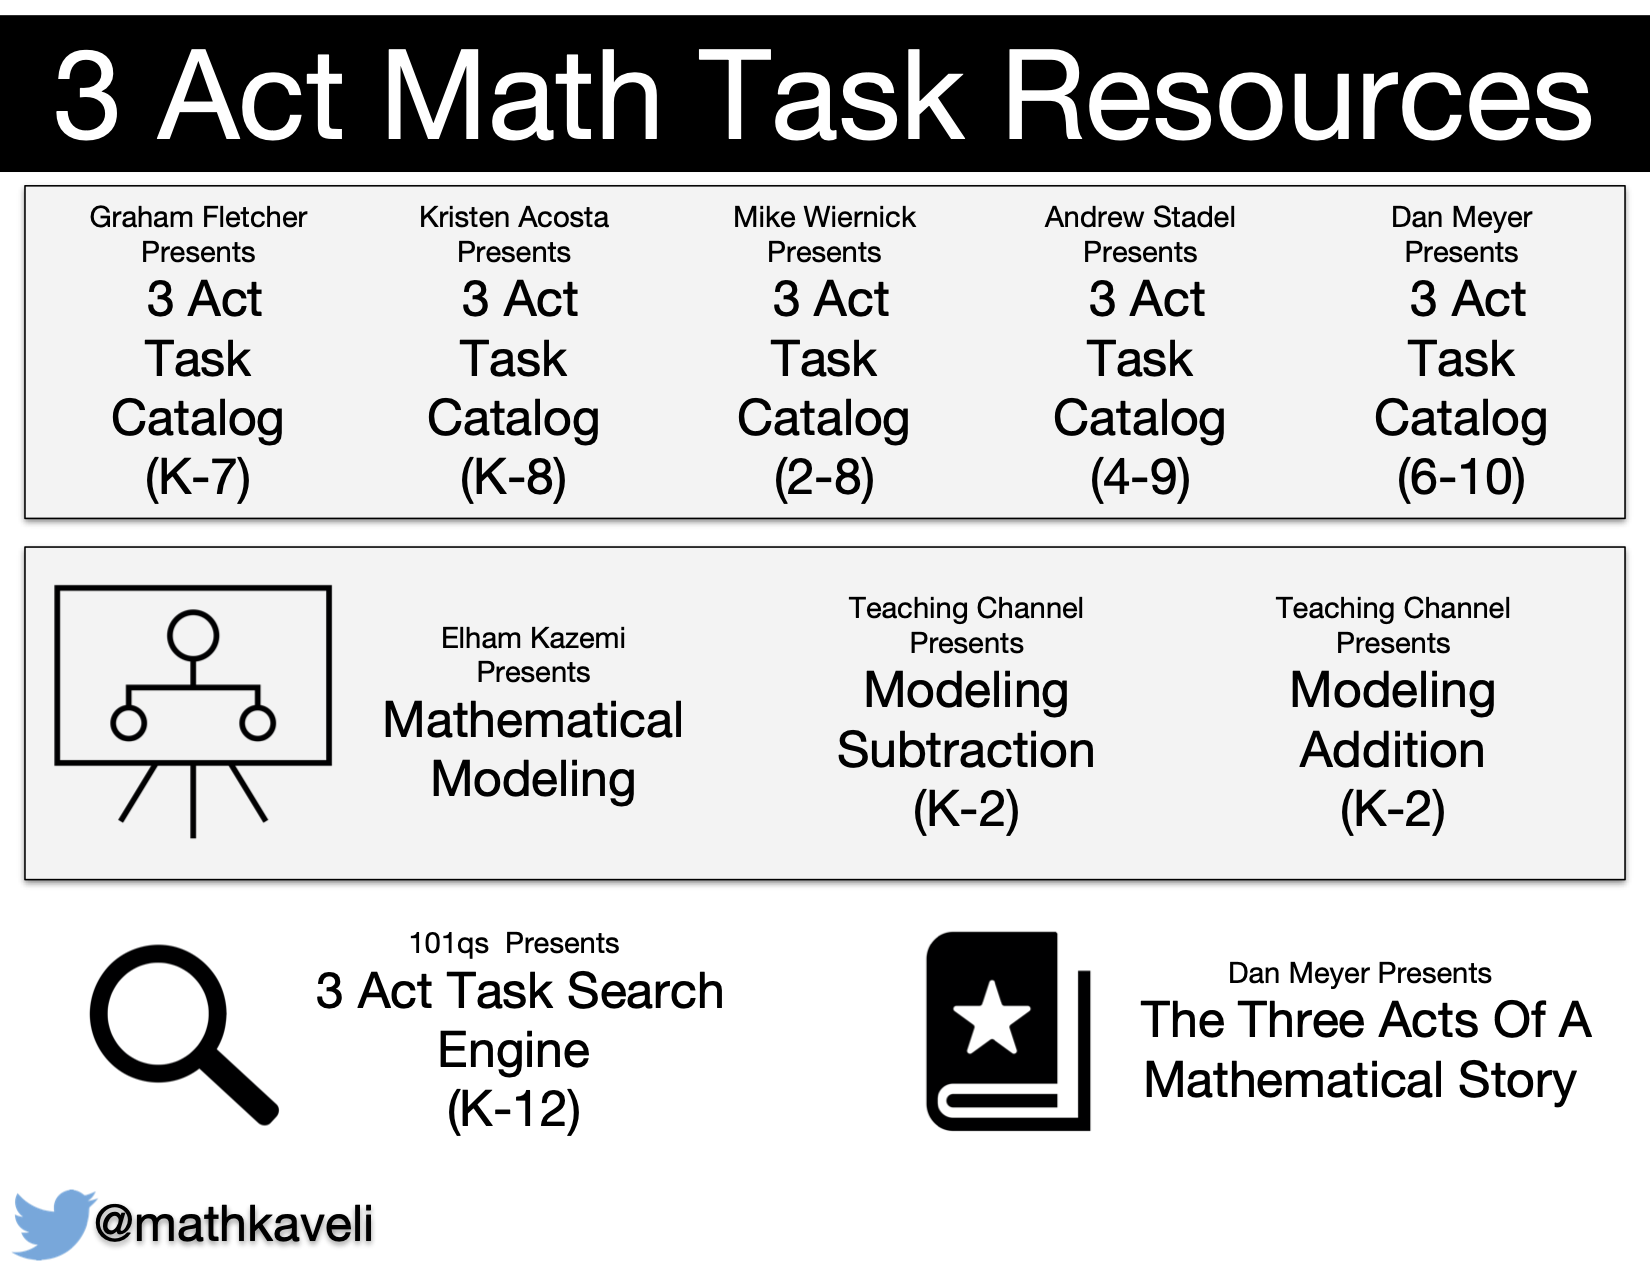 Math Resource - 3 Act Tasks